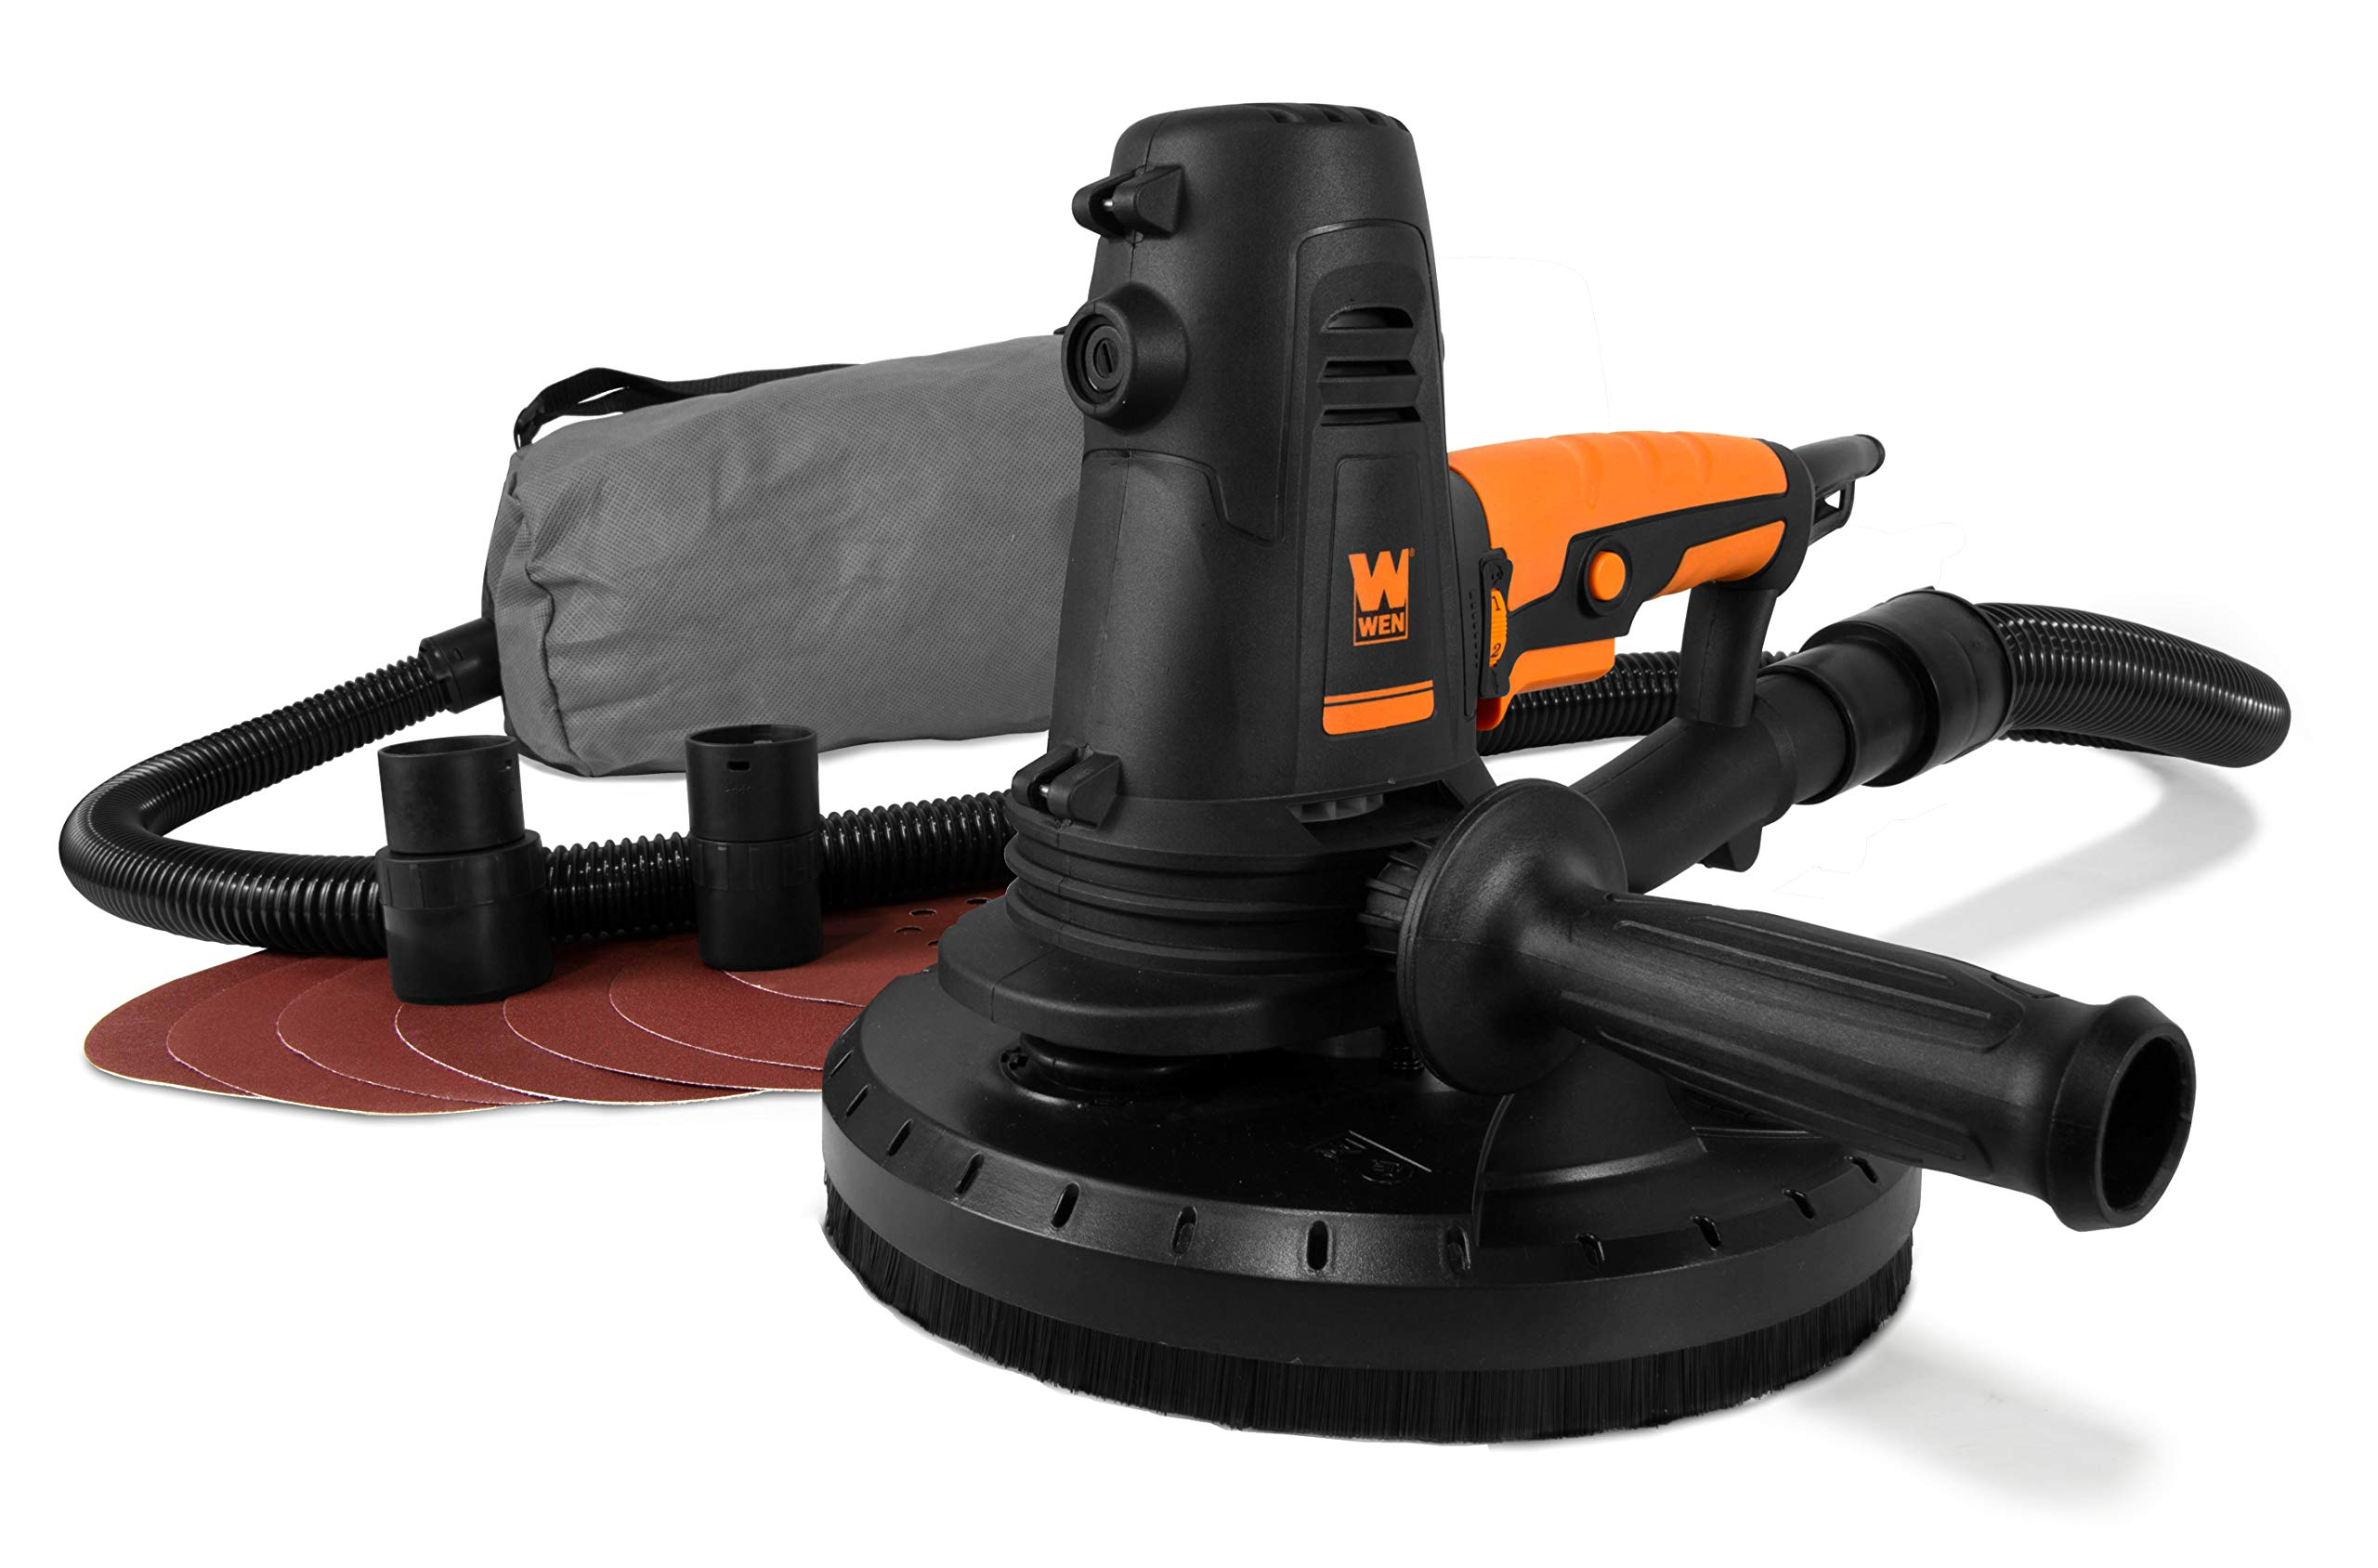 WEN 6362 10-Amp Variable Speed Handheld Drywall Sander with Sandpaper, Dust Hose and Collection Bag by WEN